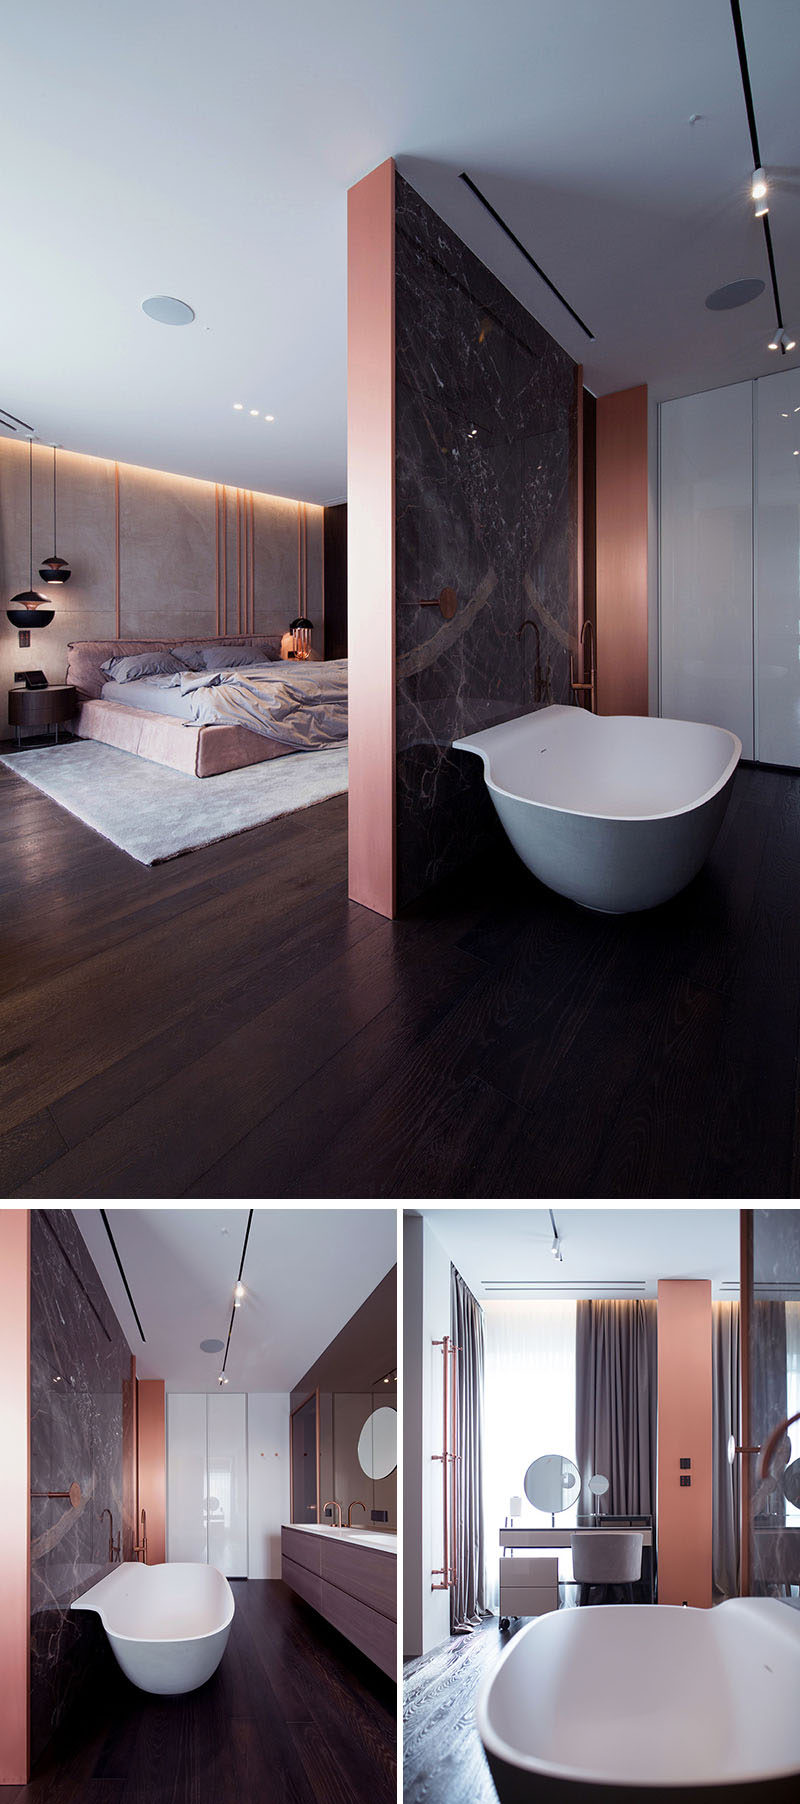 A partial wall with copper ends hides this modern bathroom from the bedroom, while keeping it open and spacious at the same time. #ModernBedroom #ModernBathroom